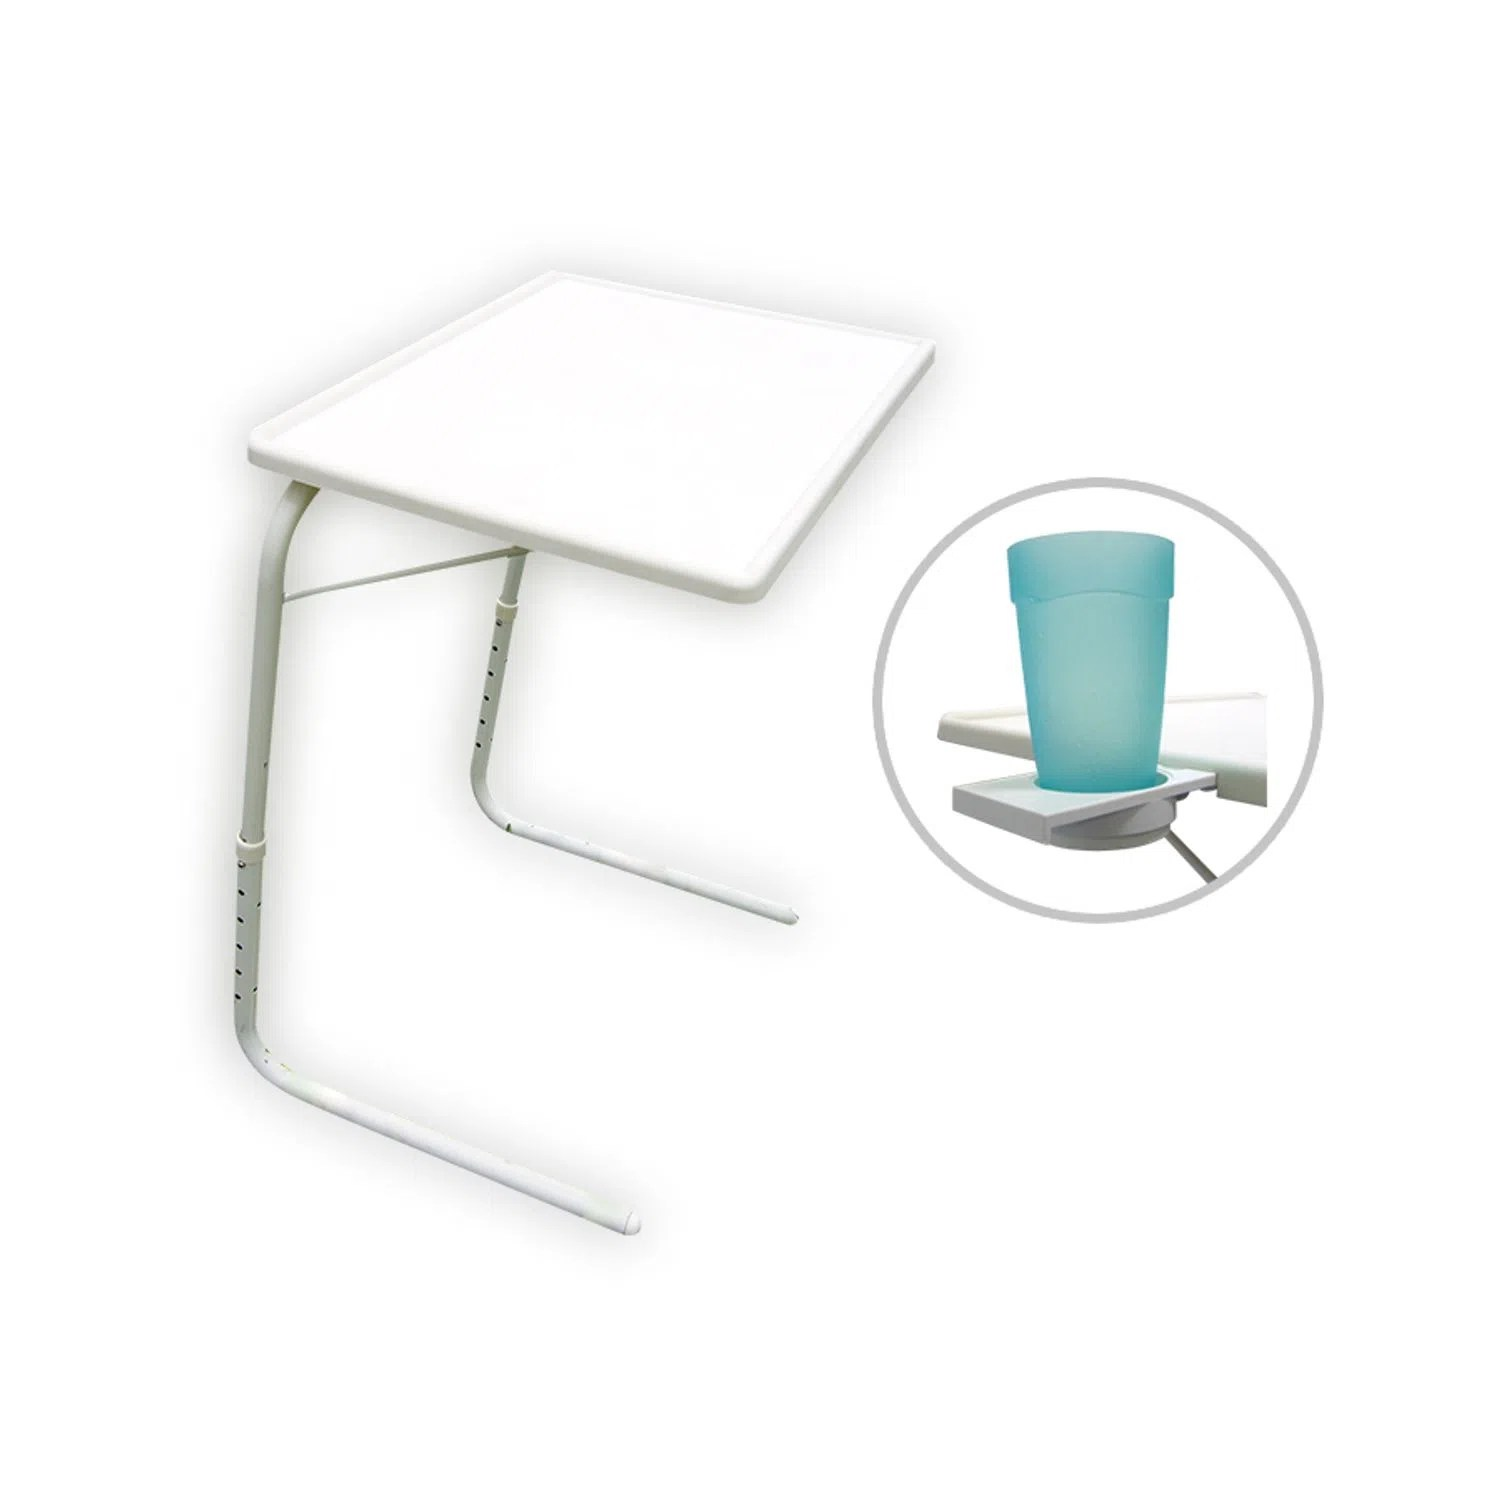 Mesa Table Mate Table Mate Ii Posavasos Blanco Qualityproducts